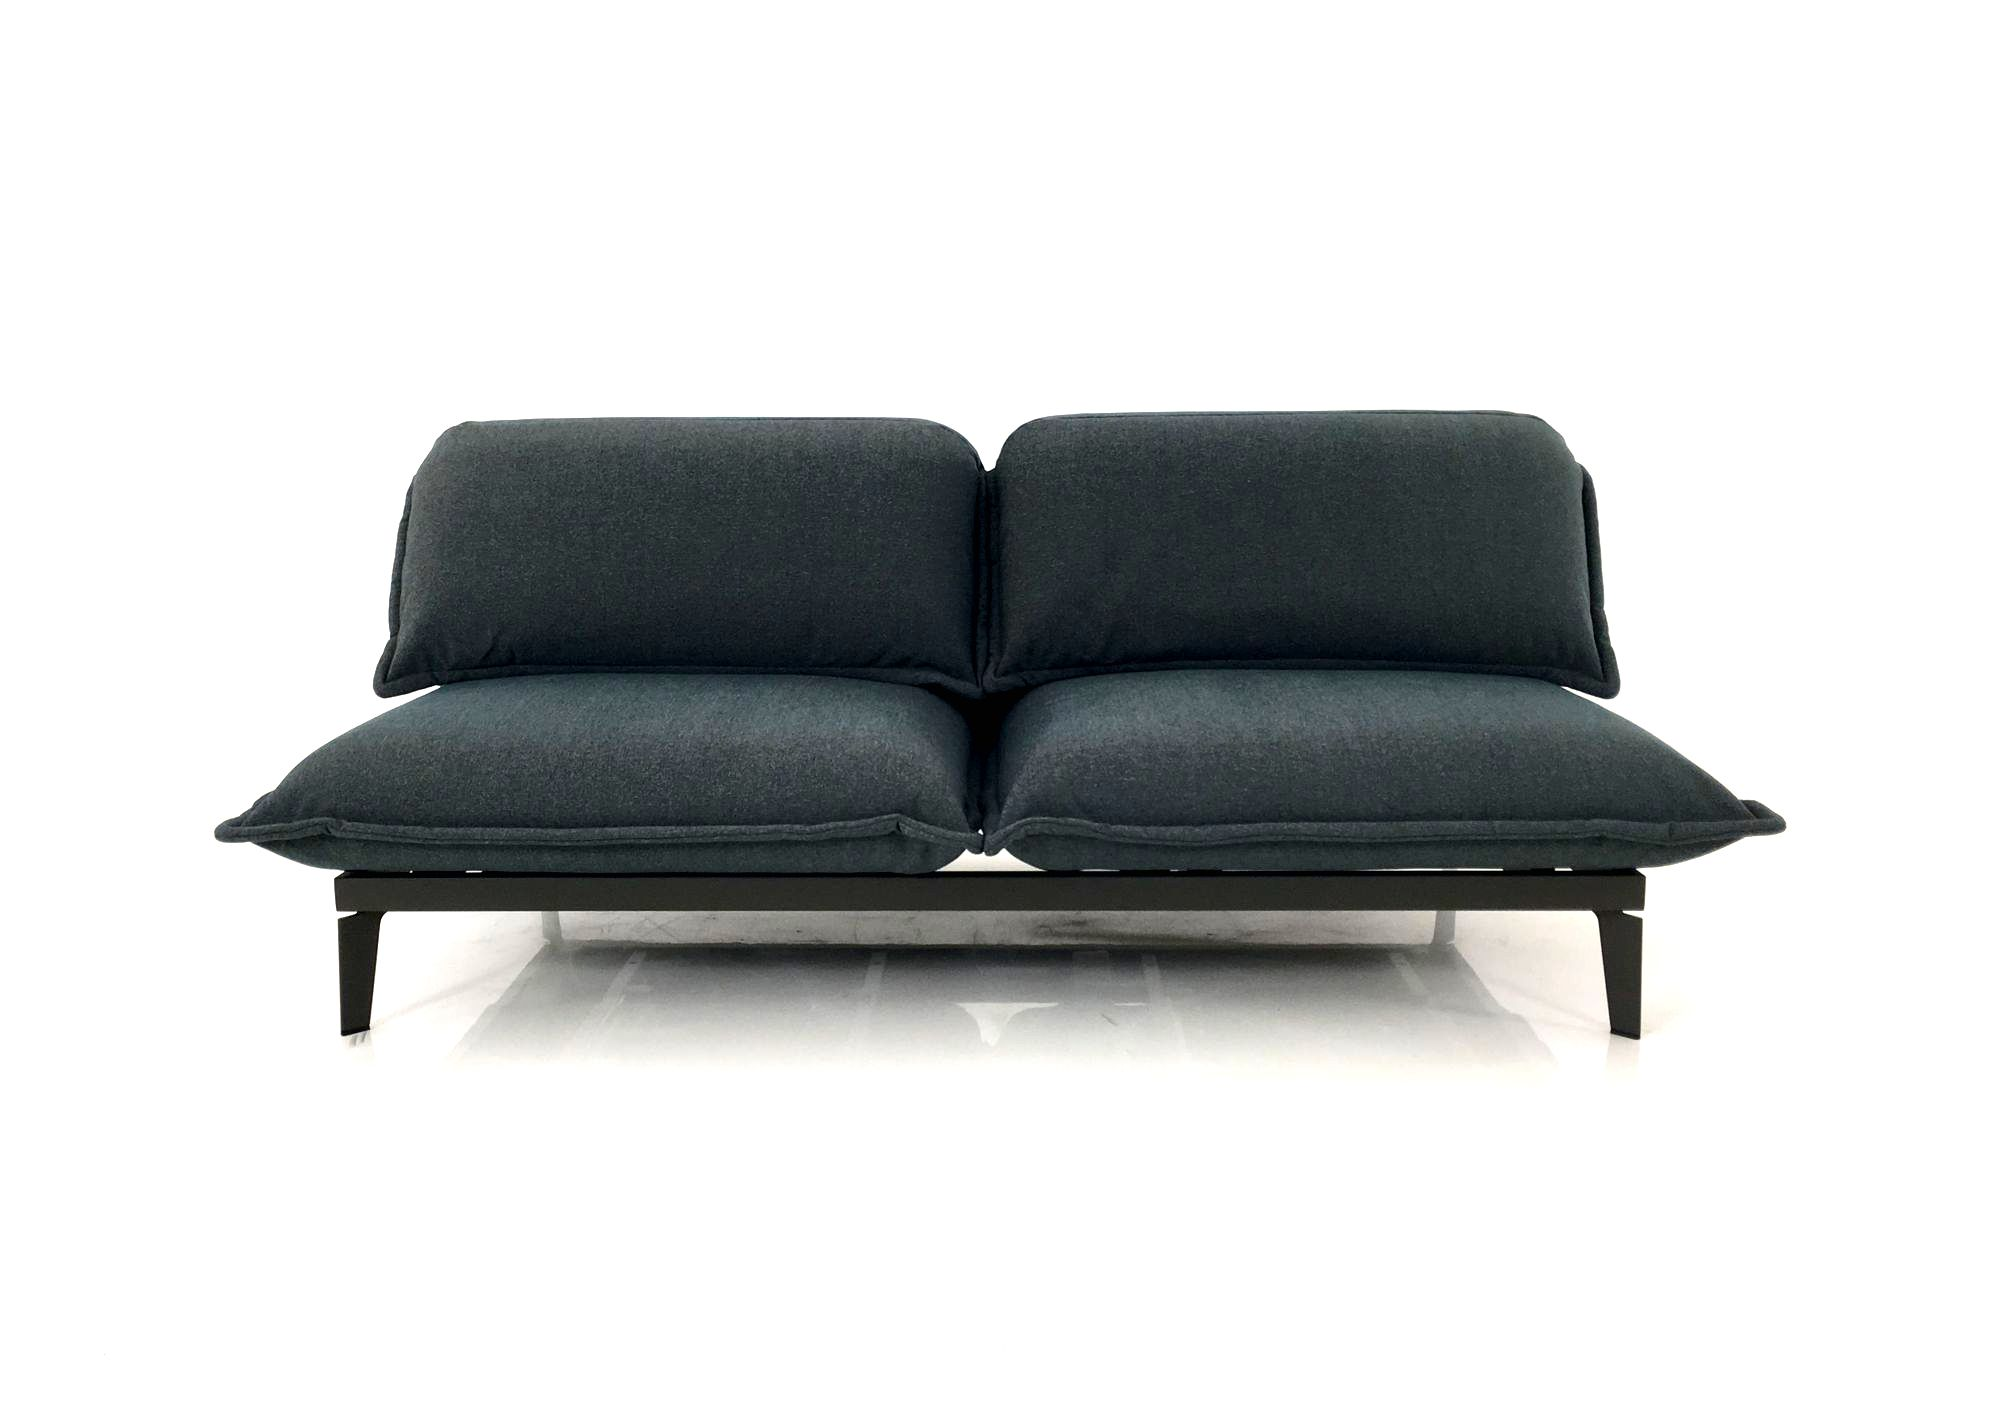 rolf benz nova sofa das entspannungsm bel mit stil rolf benz polsterm bel rolf benz marken. Black Bedroom Furniture Sets. Home Design Ideas